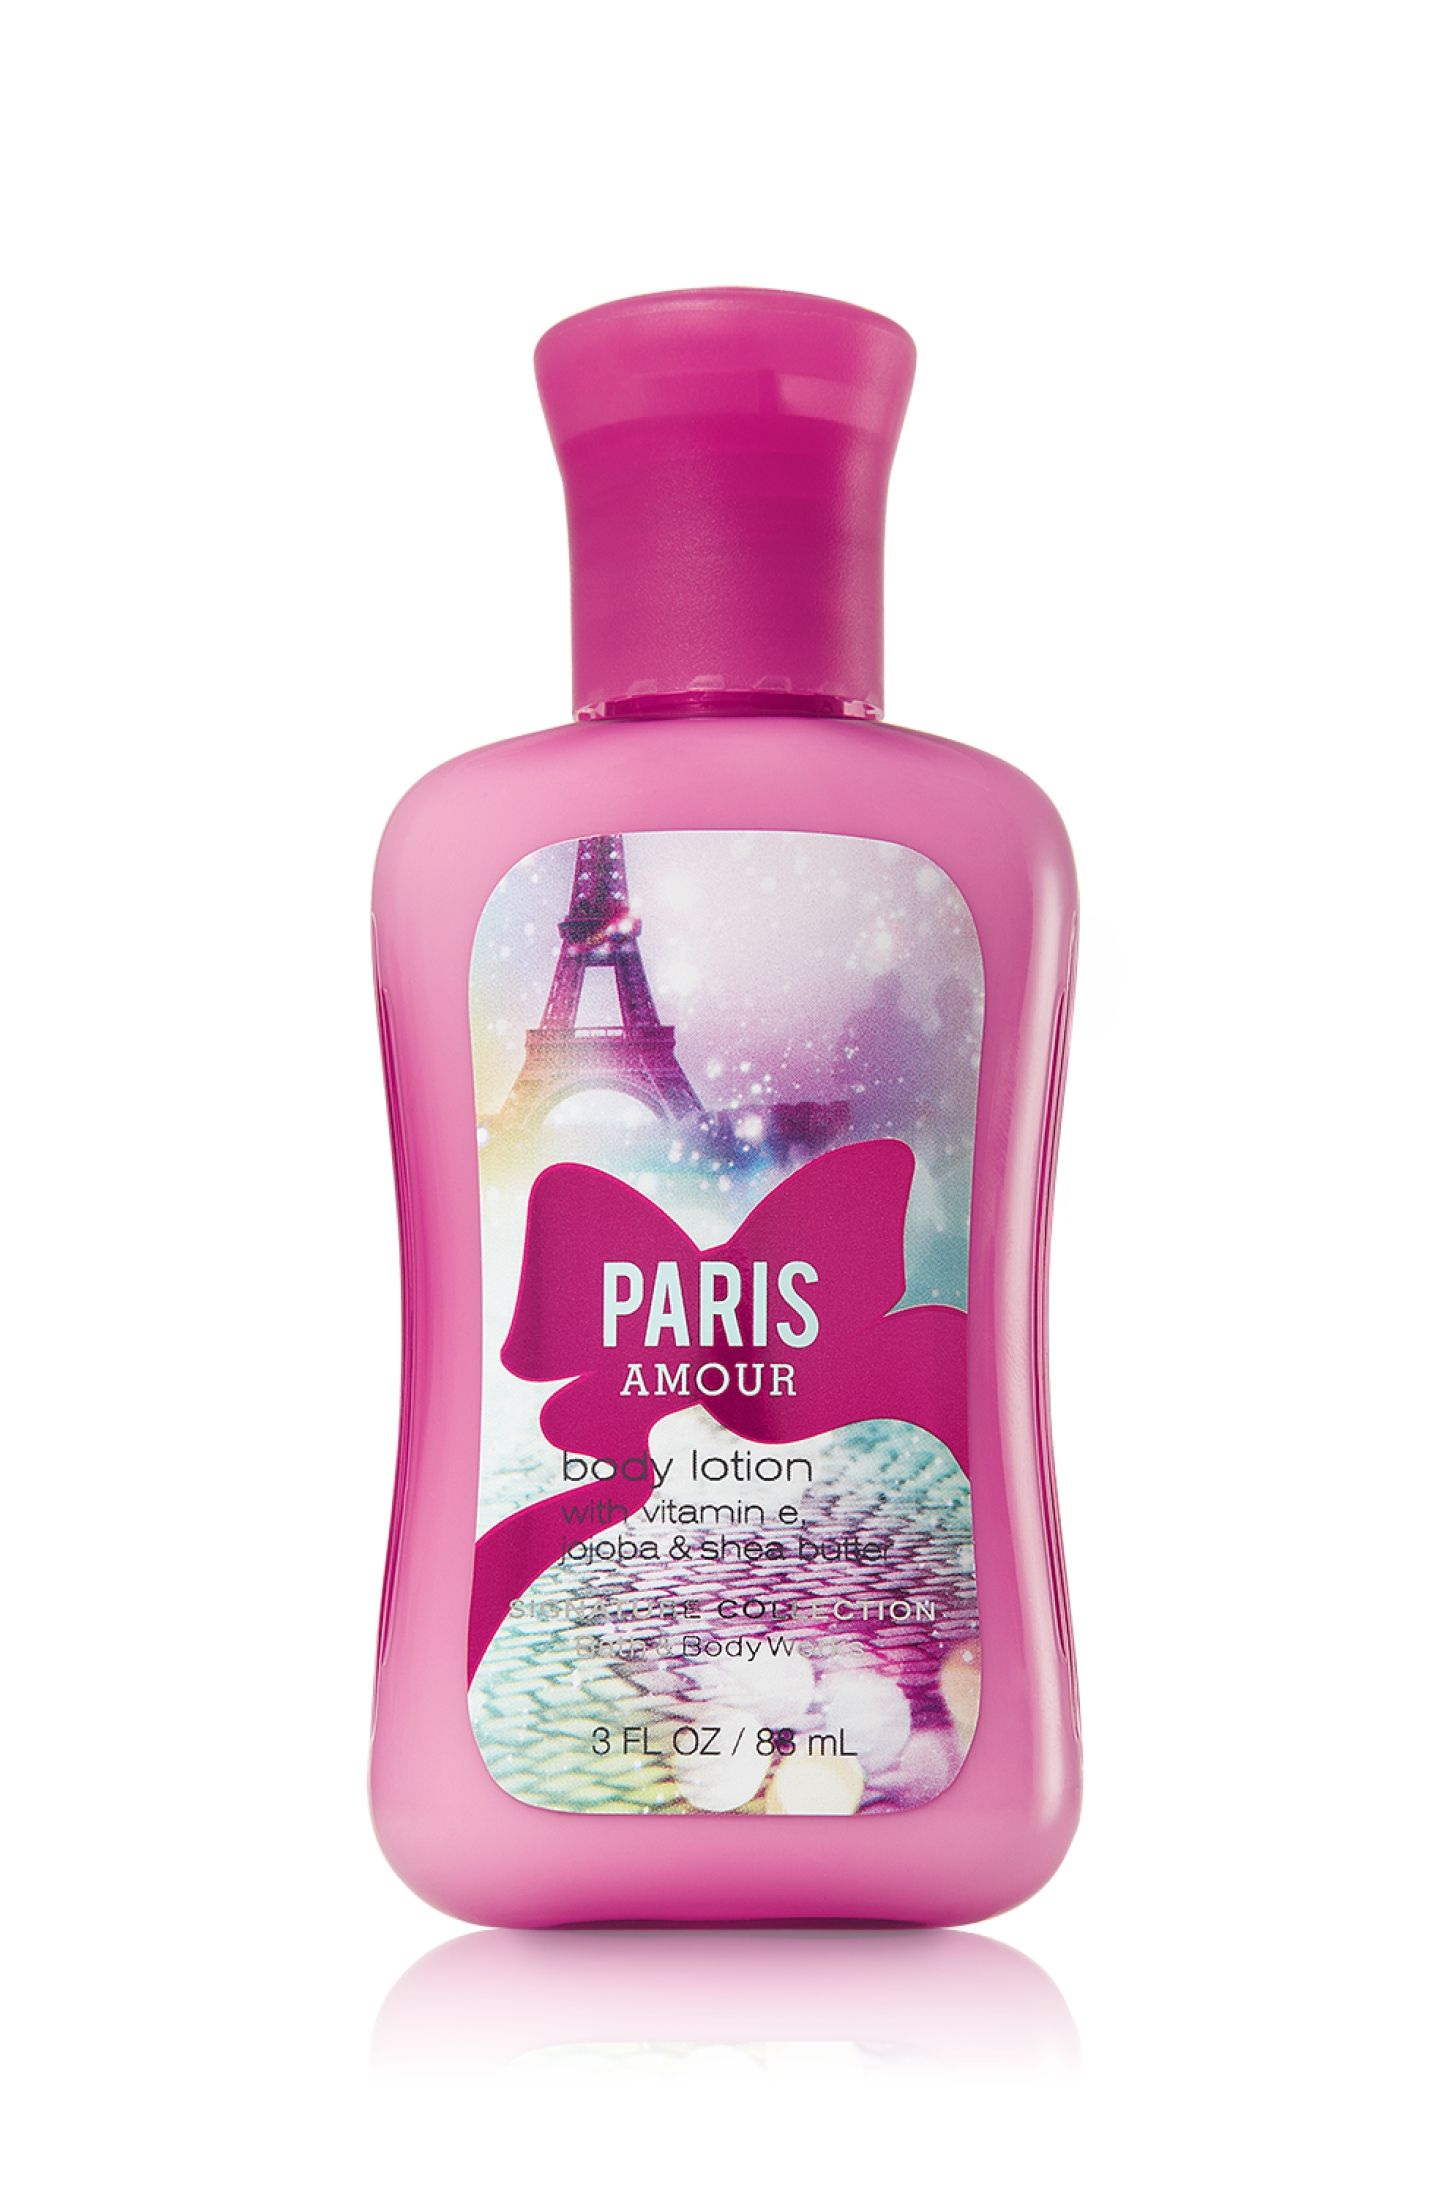 Paris Amour Travel Size Body Lotion Signature Collection Bath